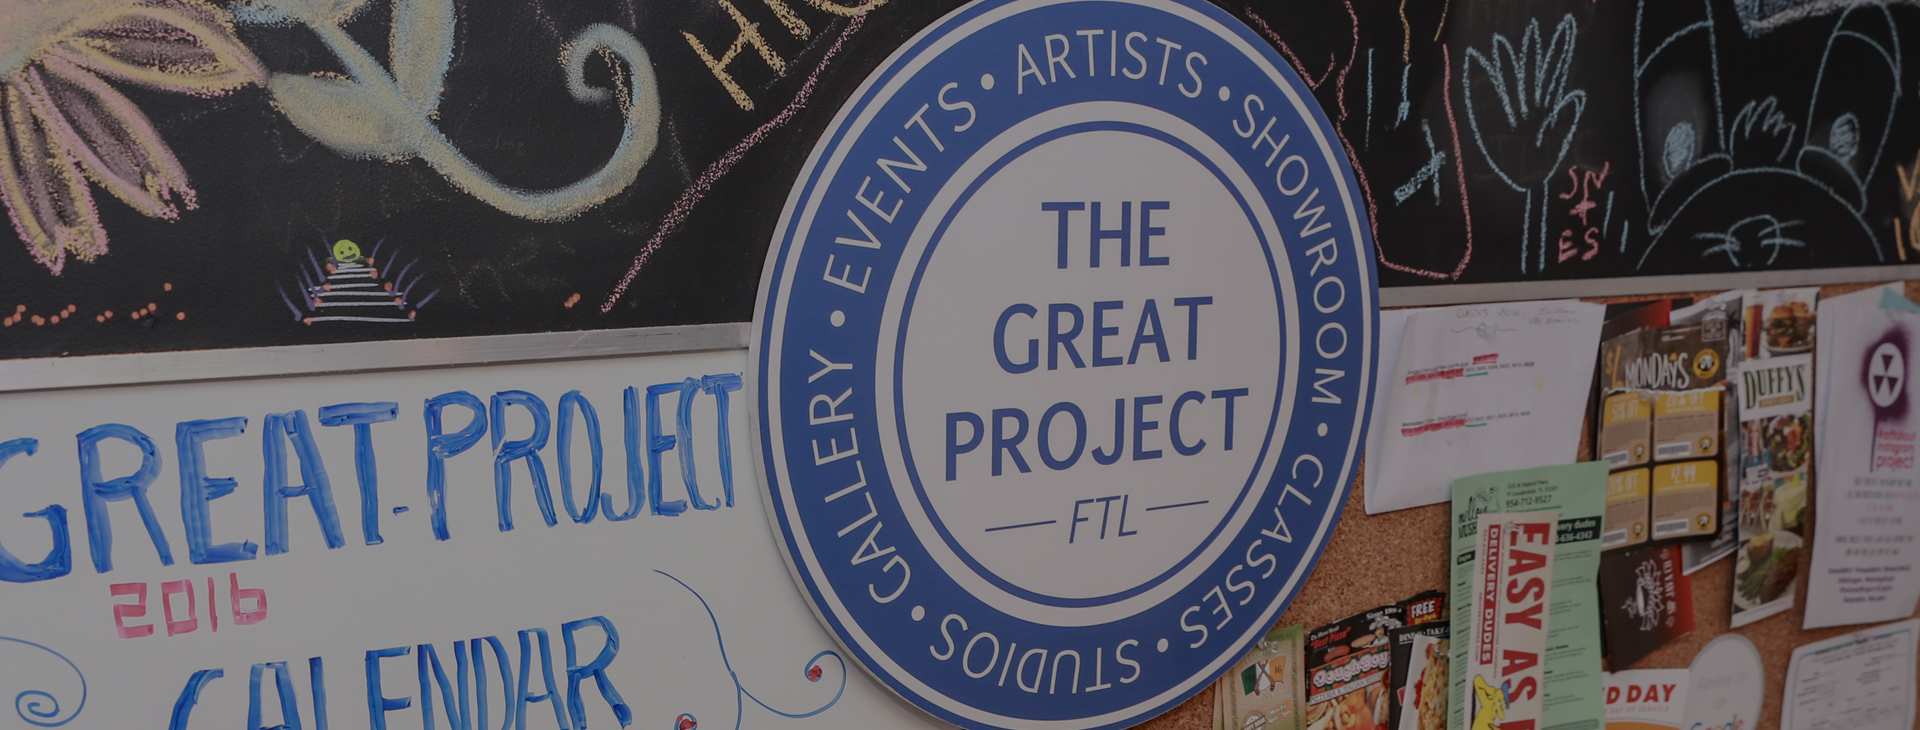 The Great Project